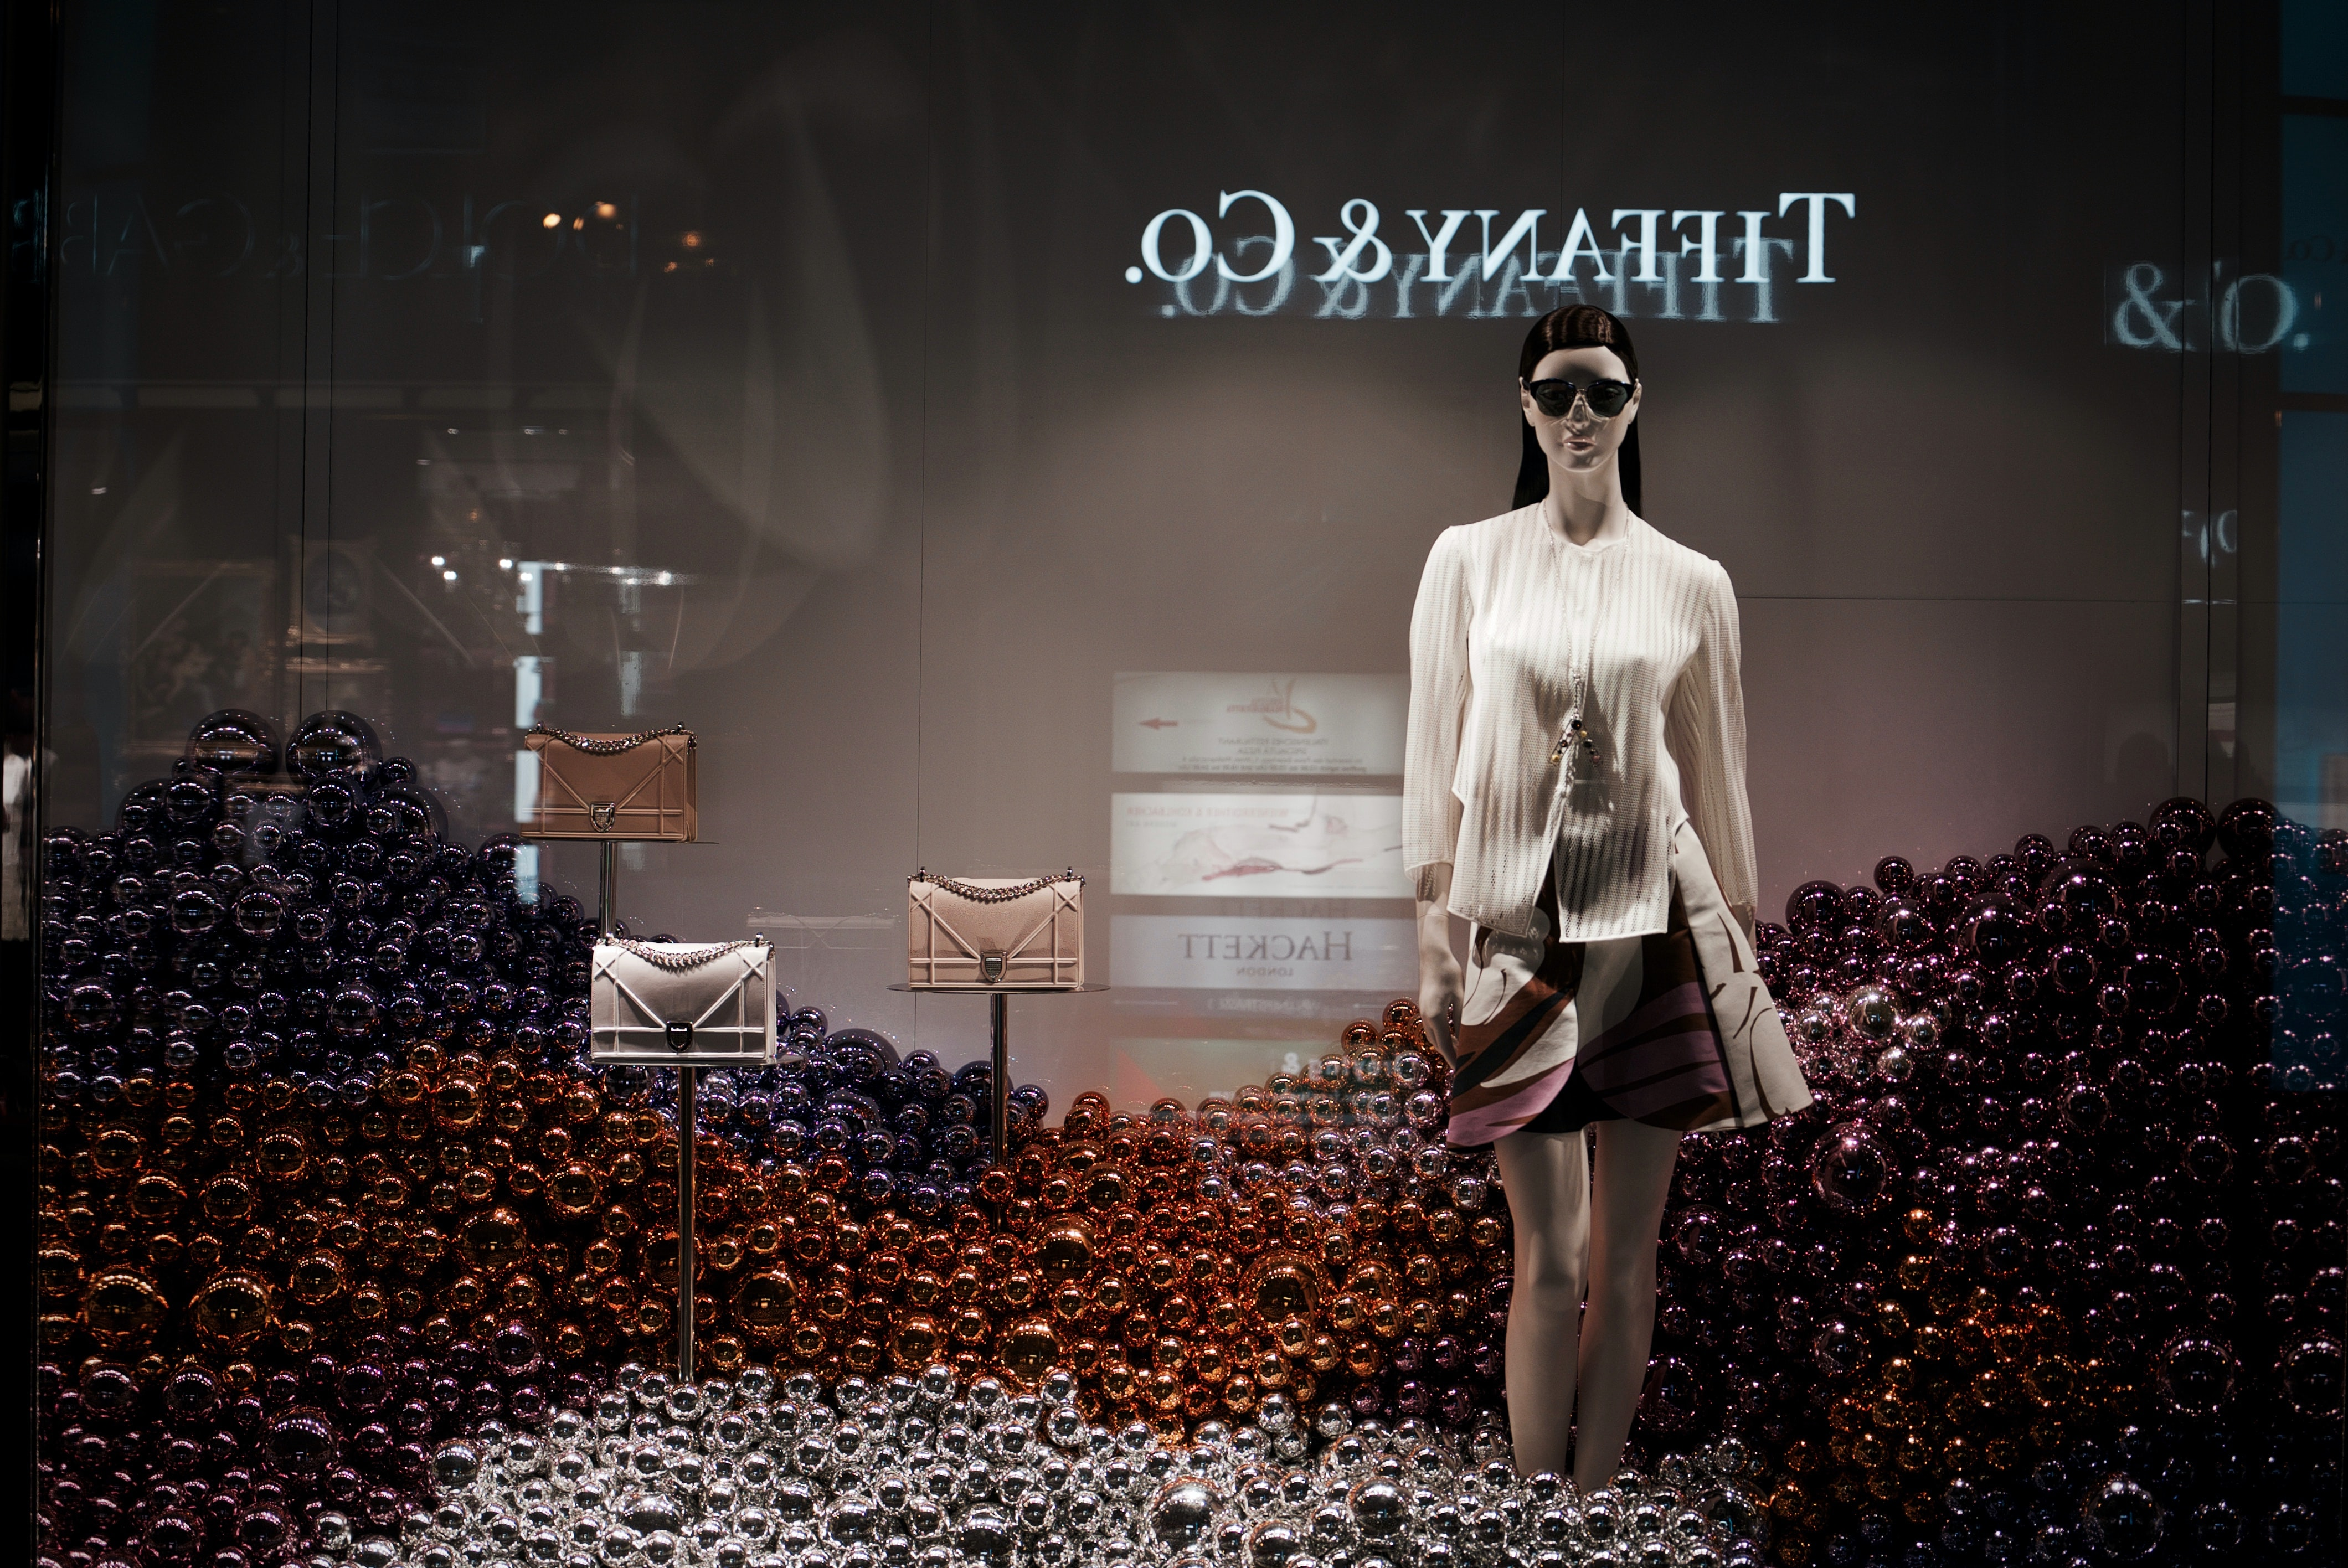 Tiffany an Co Christmas window display with holiday ornaments and a fashionable mannequin